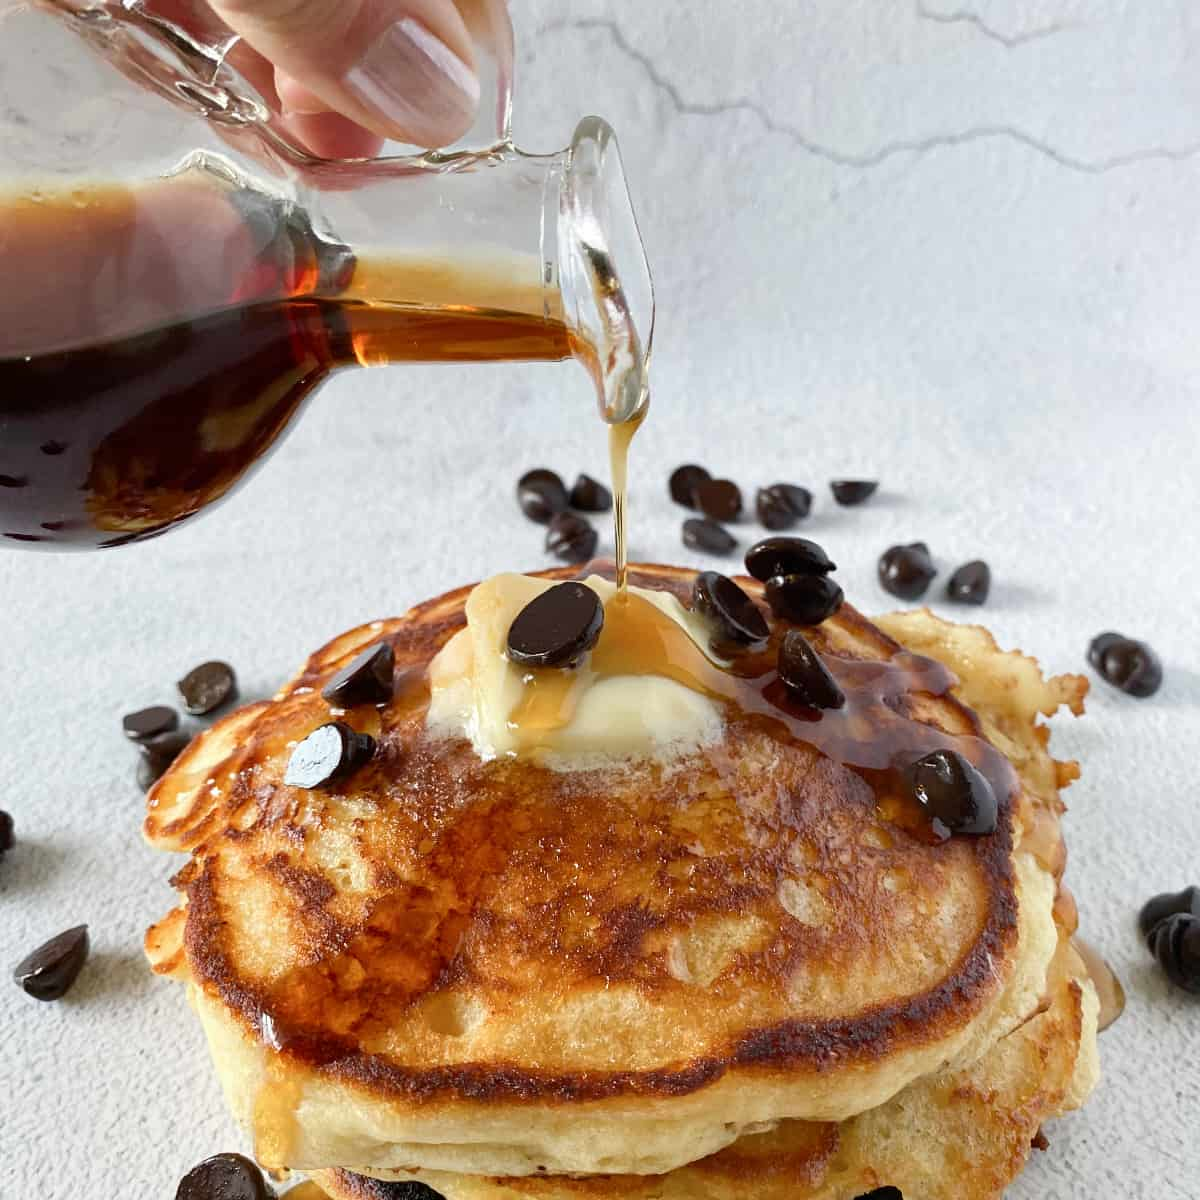 maple syrup being poured over the top of a stack of Missouri Girl Home fluffy olive oil buttermilk pancakes that is topped with butter and chocolate chips